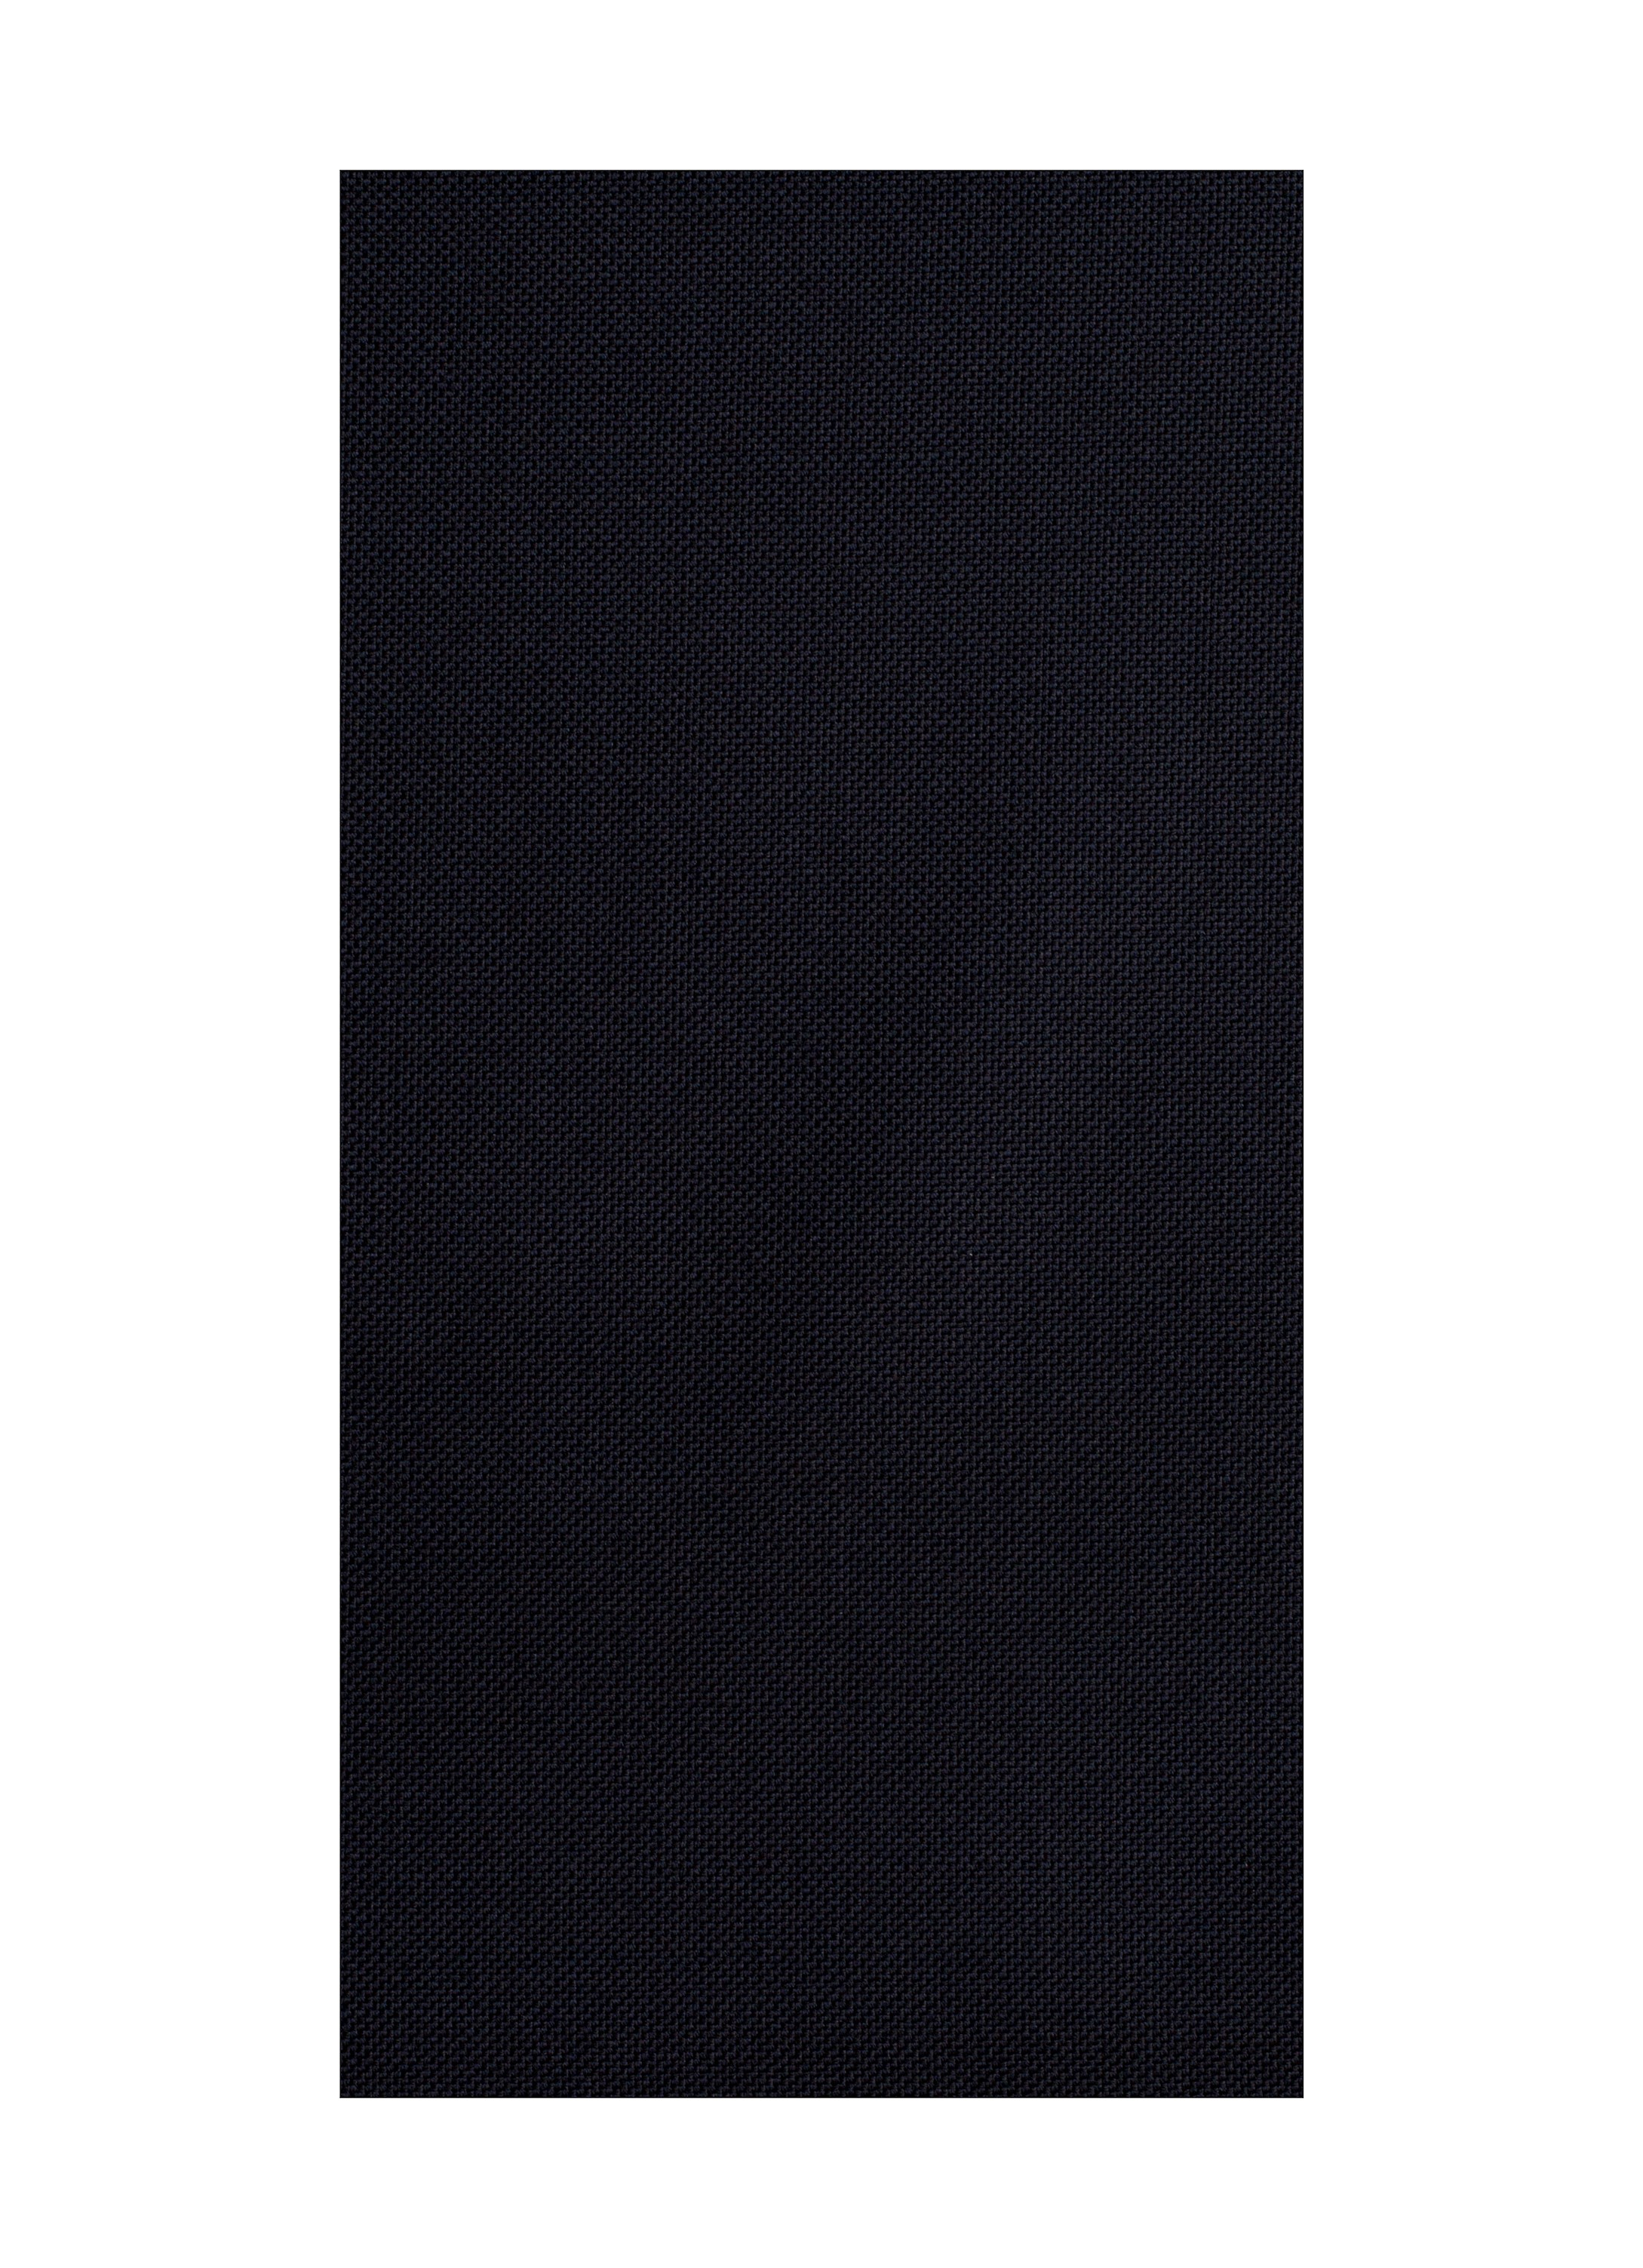 Suits_Navy_Plain_Sienna_P3467_Suitsupply_Online_Store_2.jpg